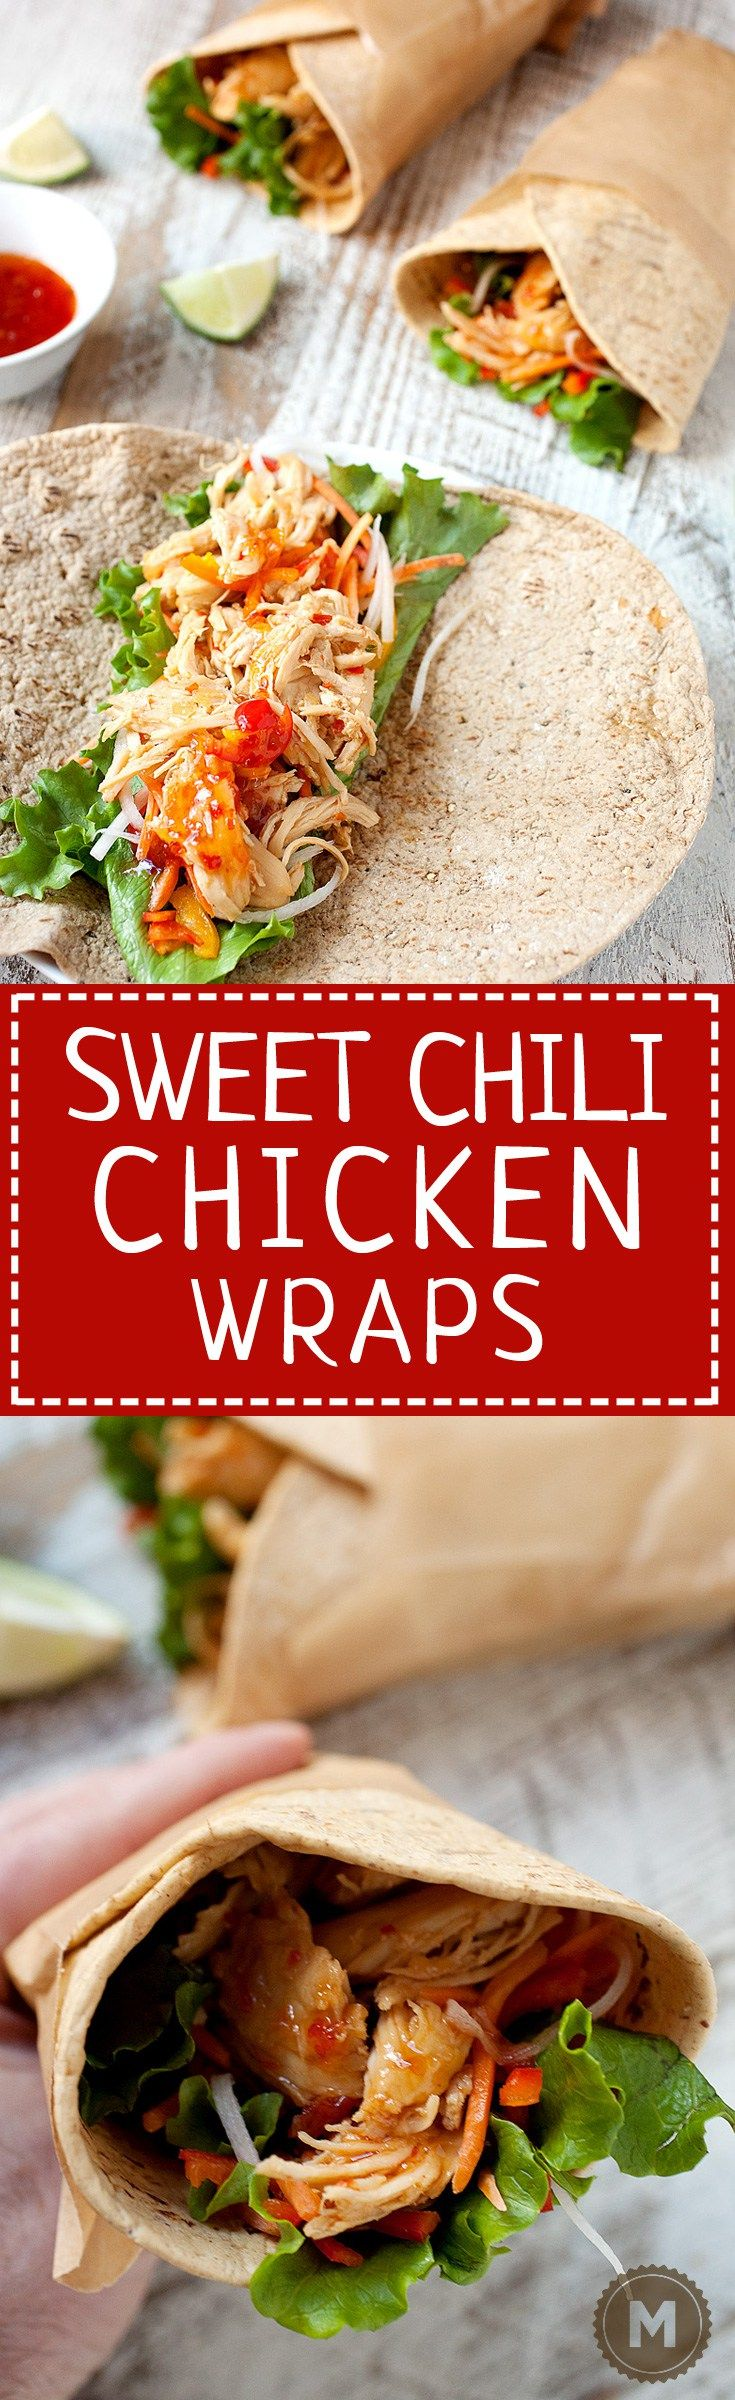 Sweet Chili Chicken Wraps: Shredded chicken simmered in a simple sweet chili lime sauce and stuffed inside flatbread wraps with fresh, crunchy…